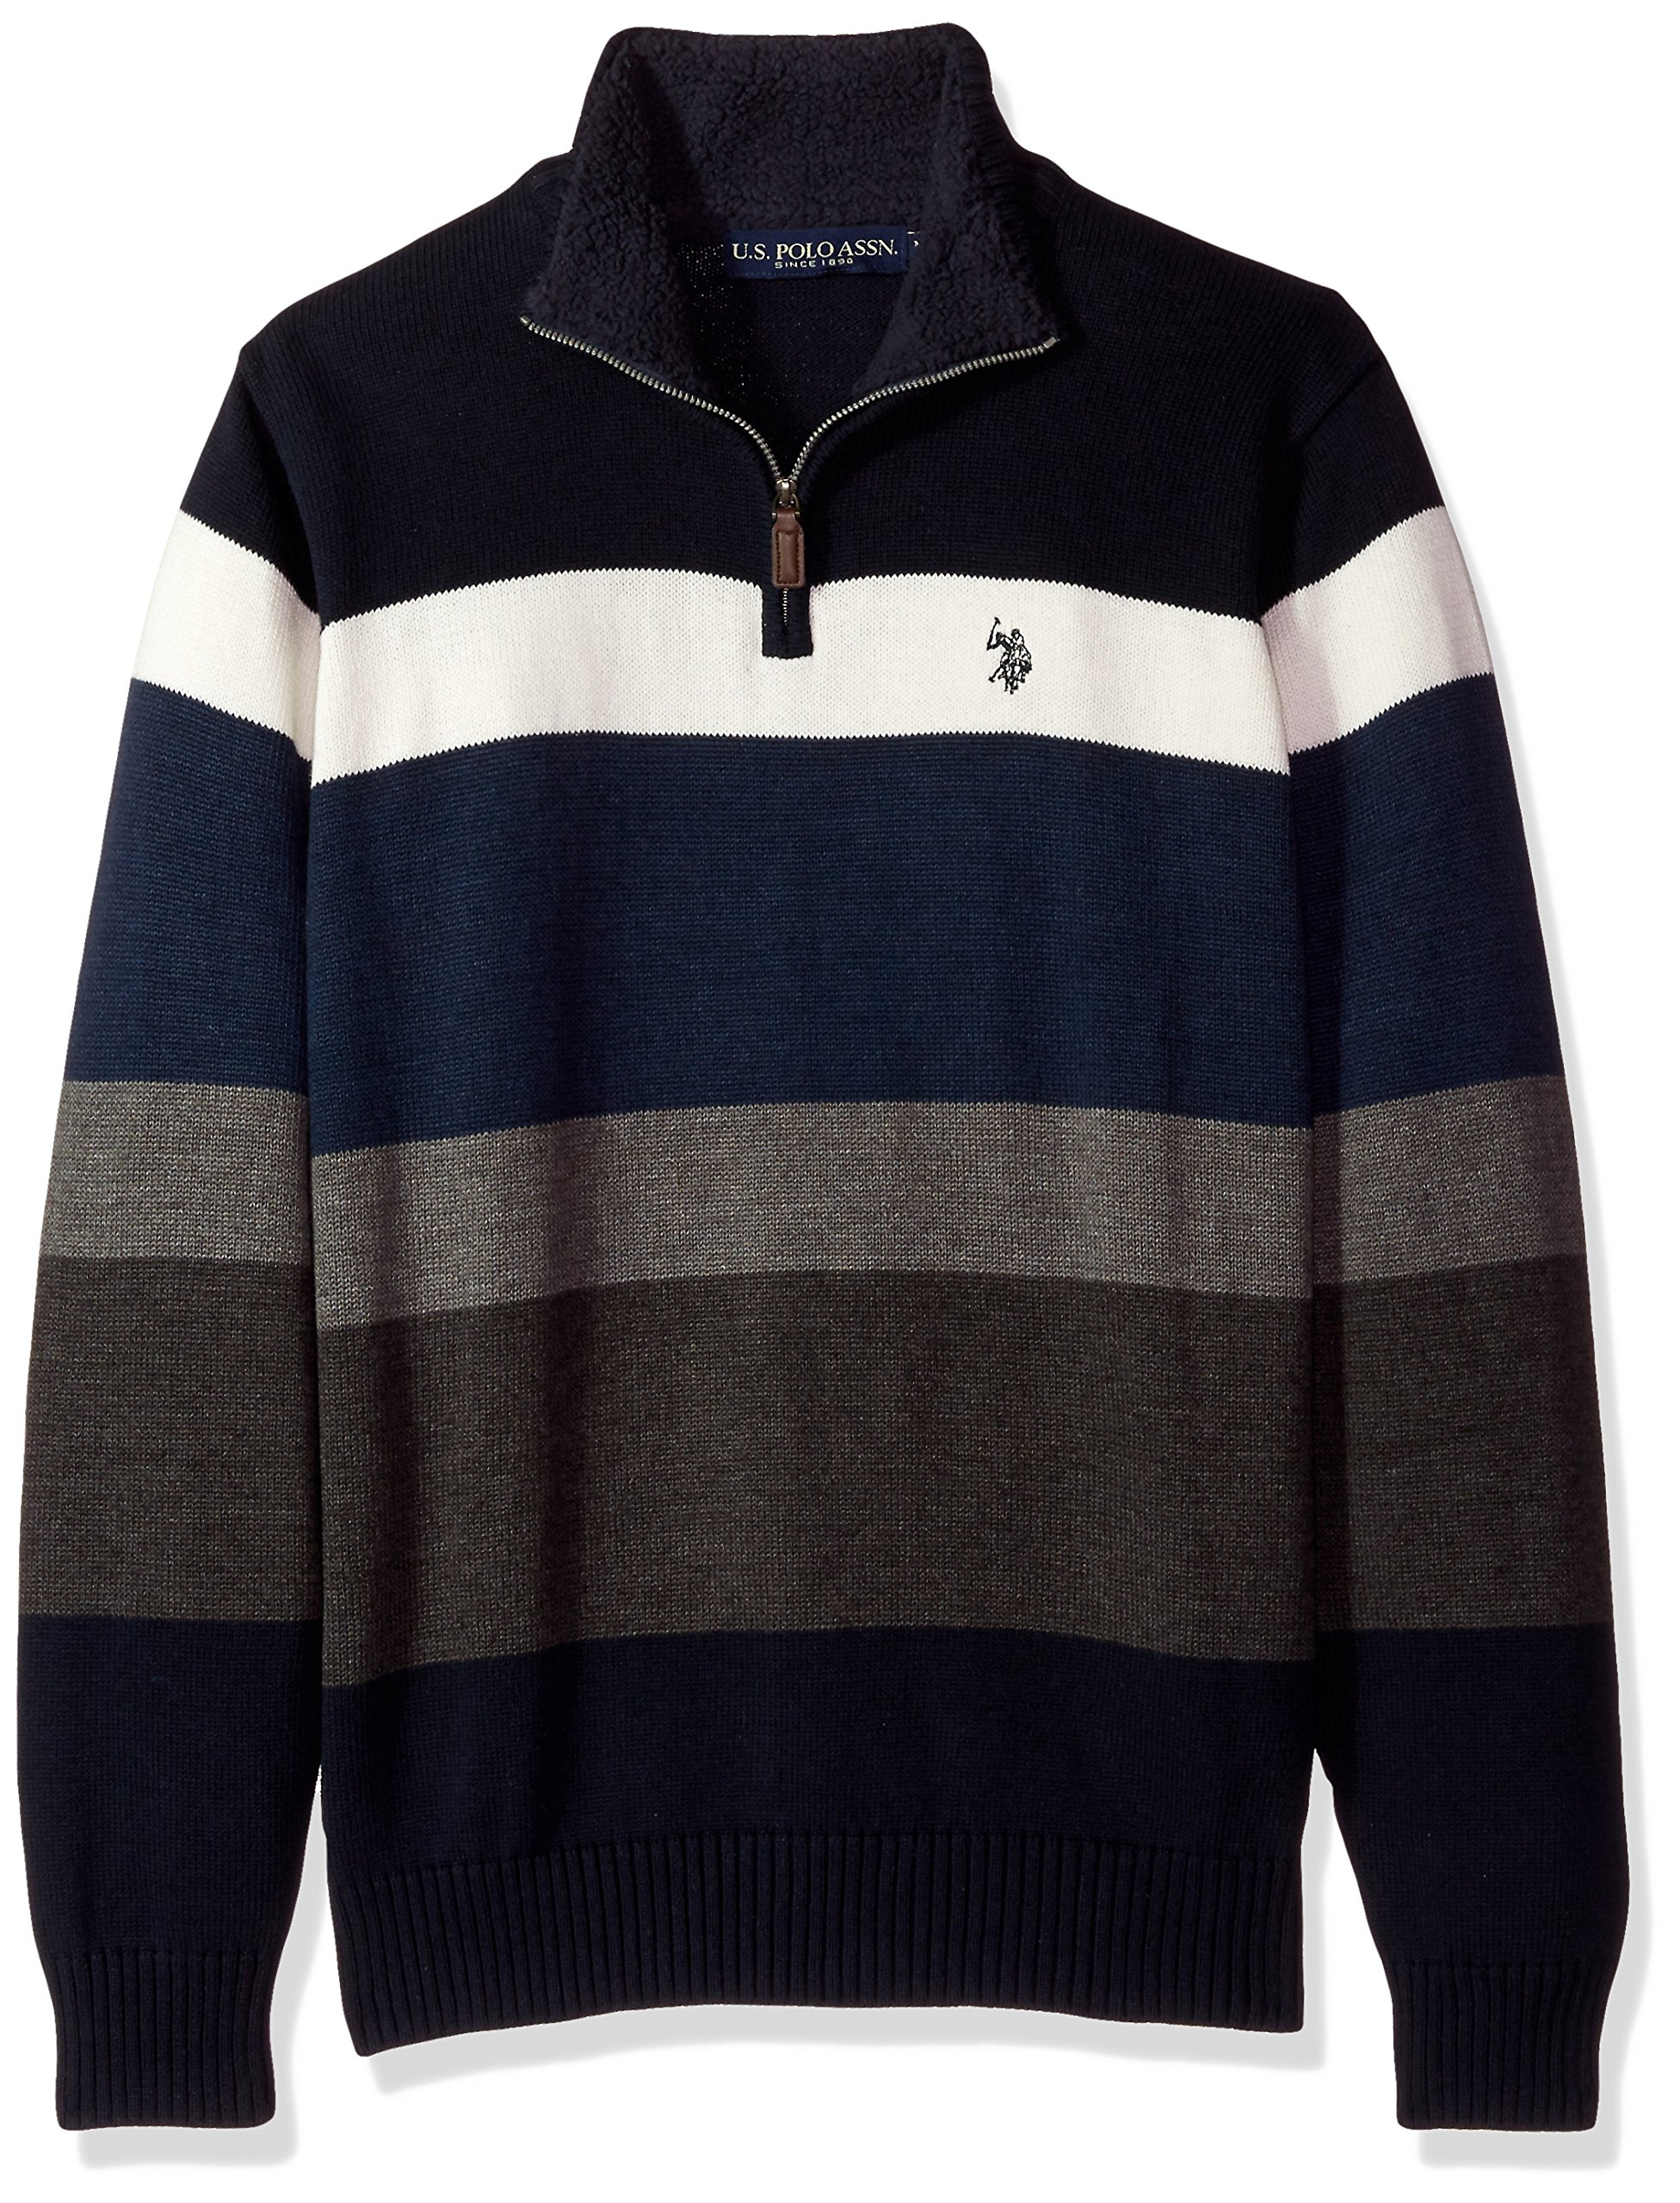 U.S. Polo Assn. Men's Striped 1/4 Zip Sweater W/Sherpa Neck, Navy, Large by U.S. Polo Assn.